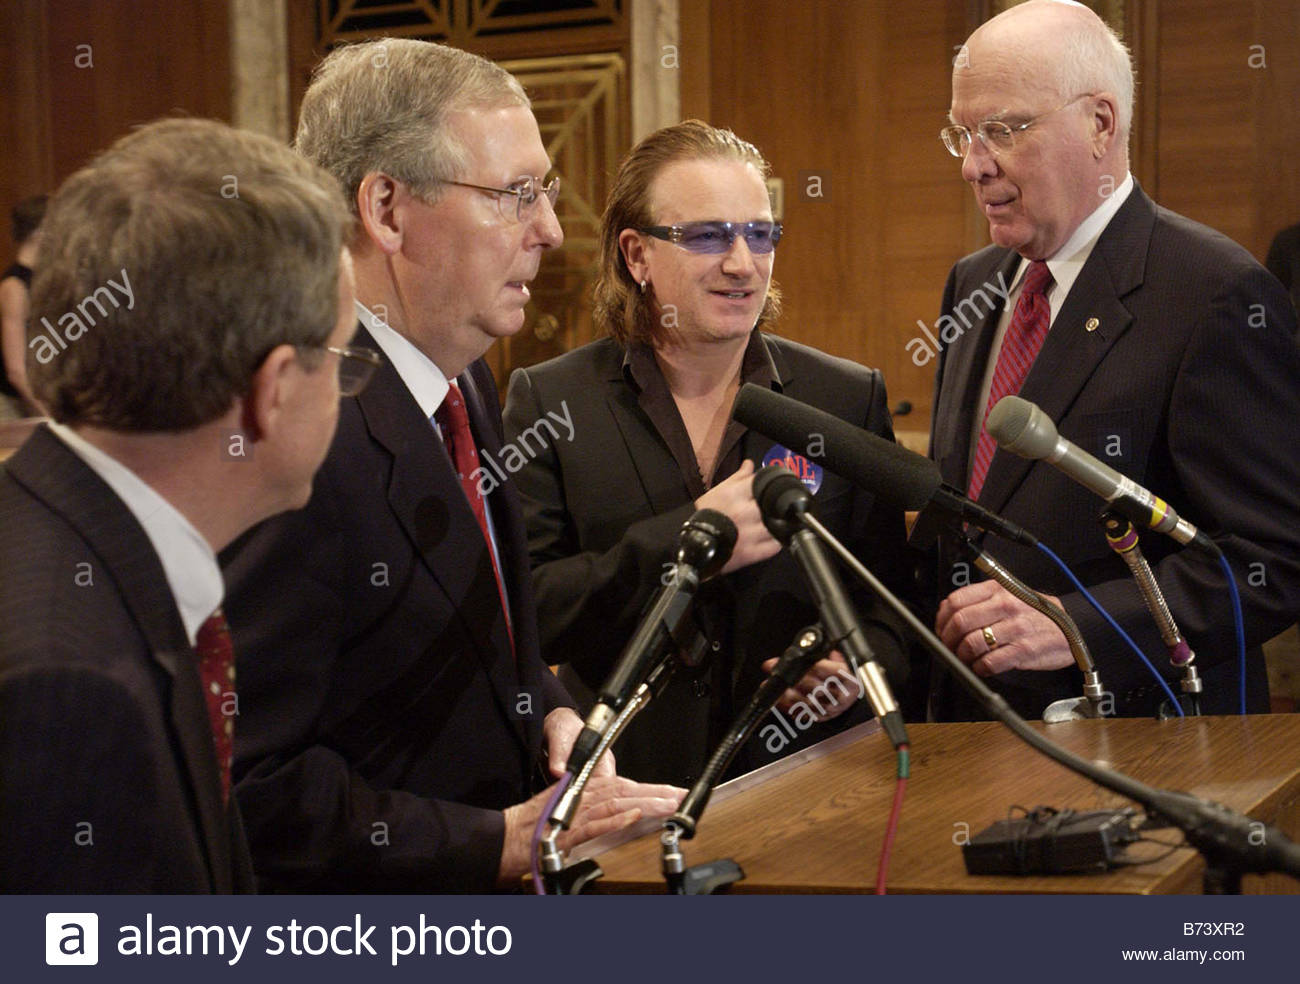 5 18 04 GLOBAL AIDS Sen Mike DeWine R Ohio Senate Majority Whip Mitch McConnell Rock star Bono in blue glasses and - Stock Image